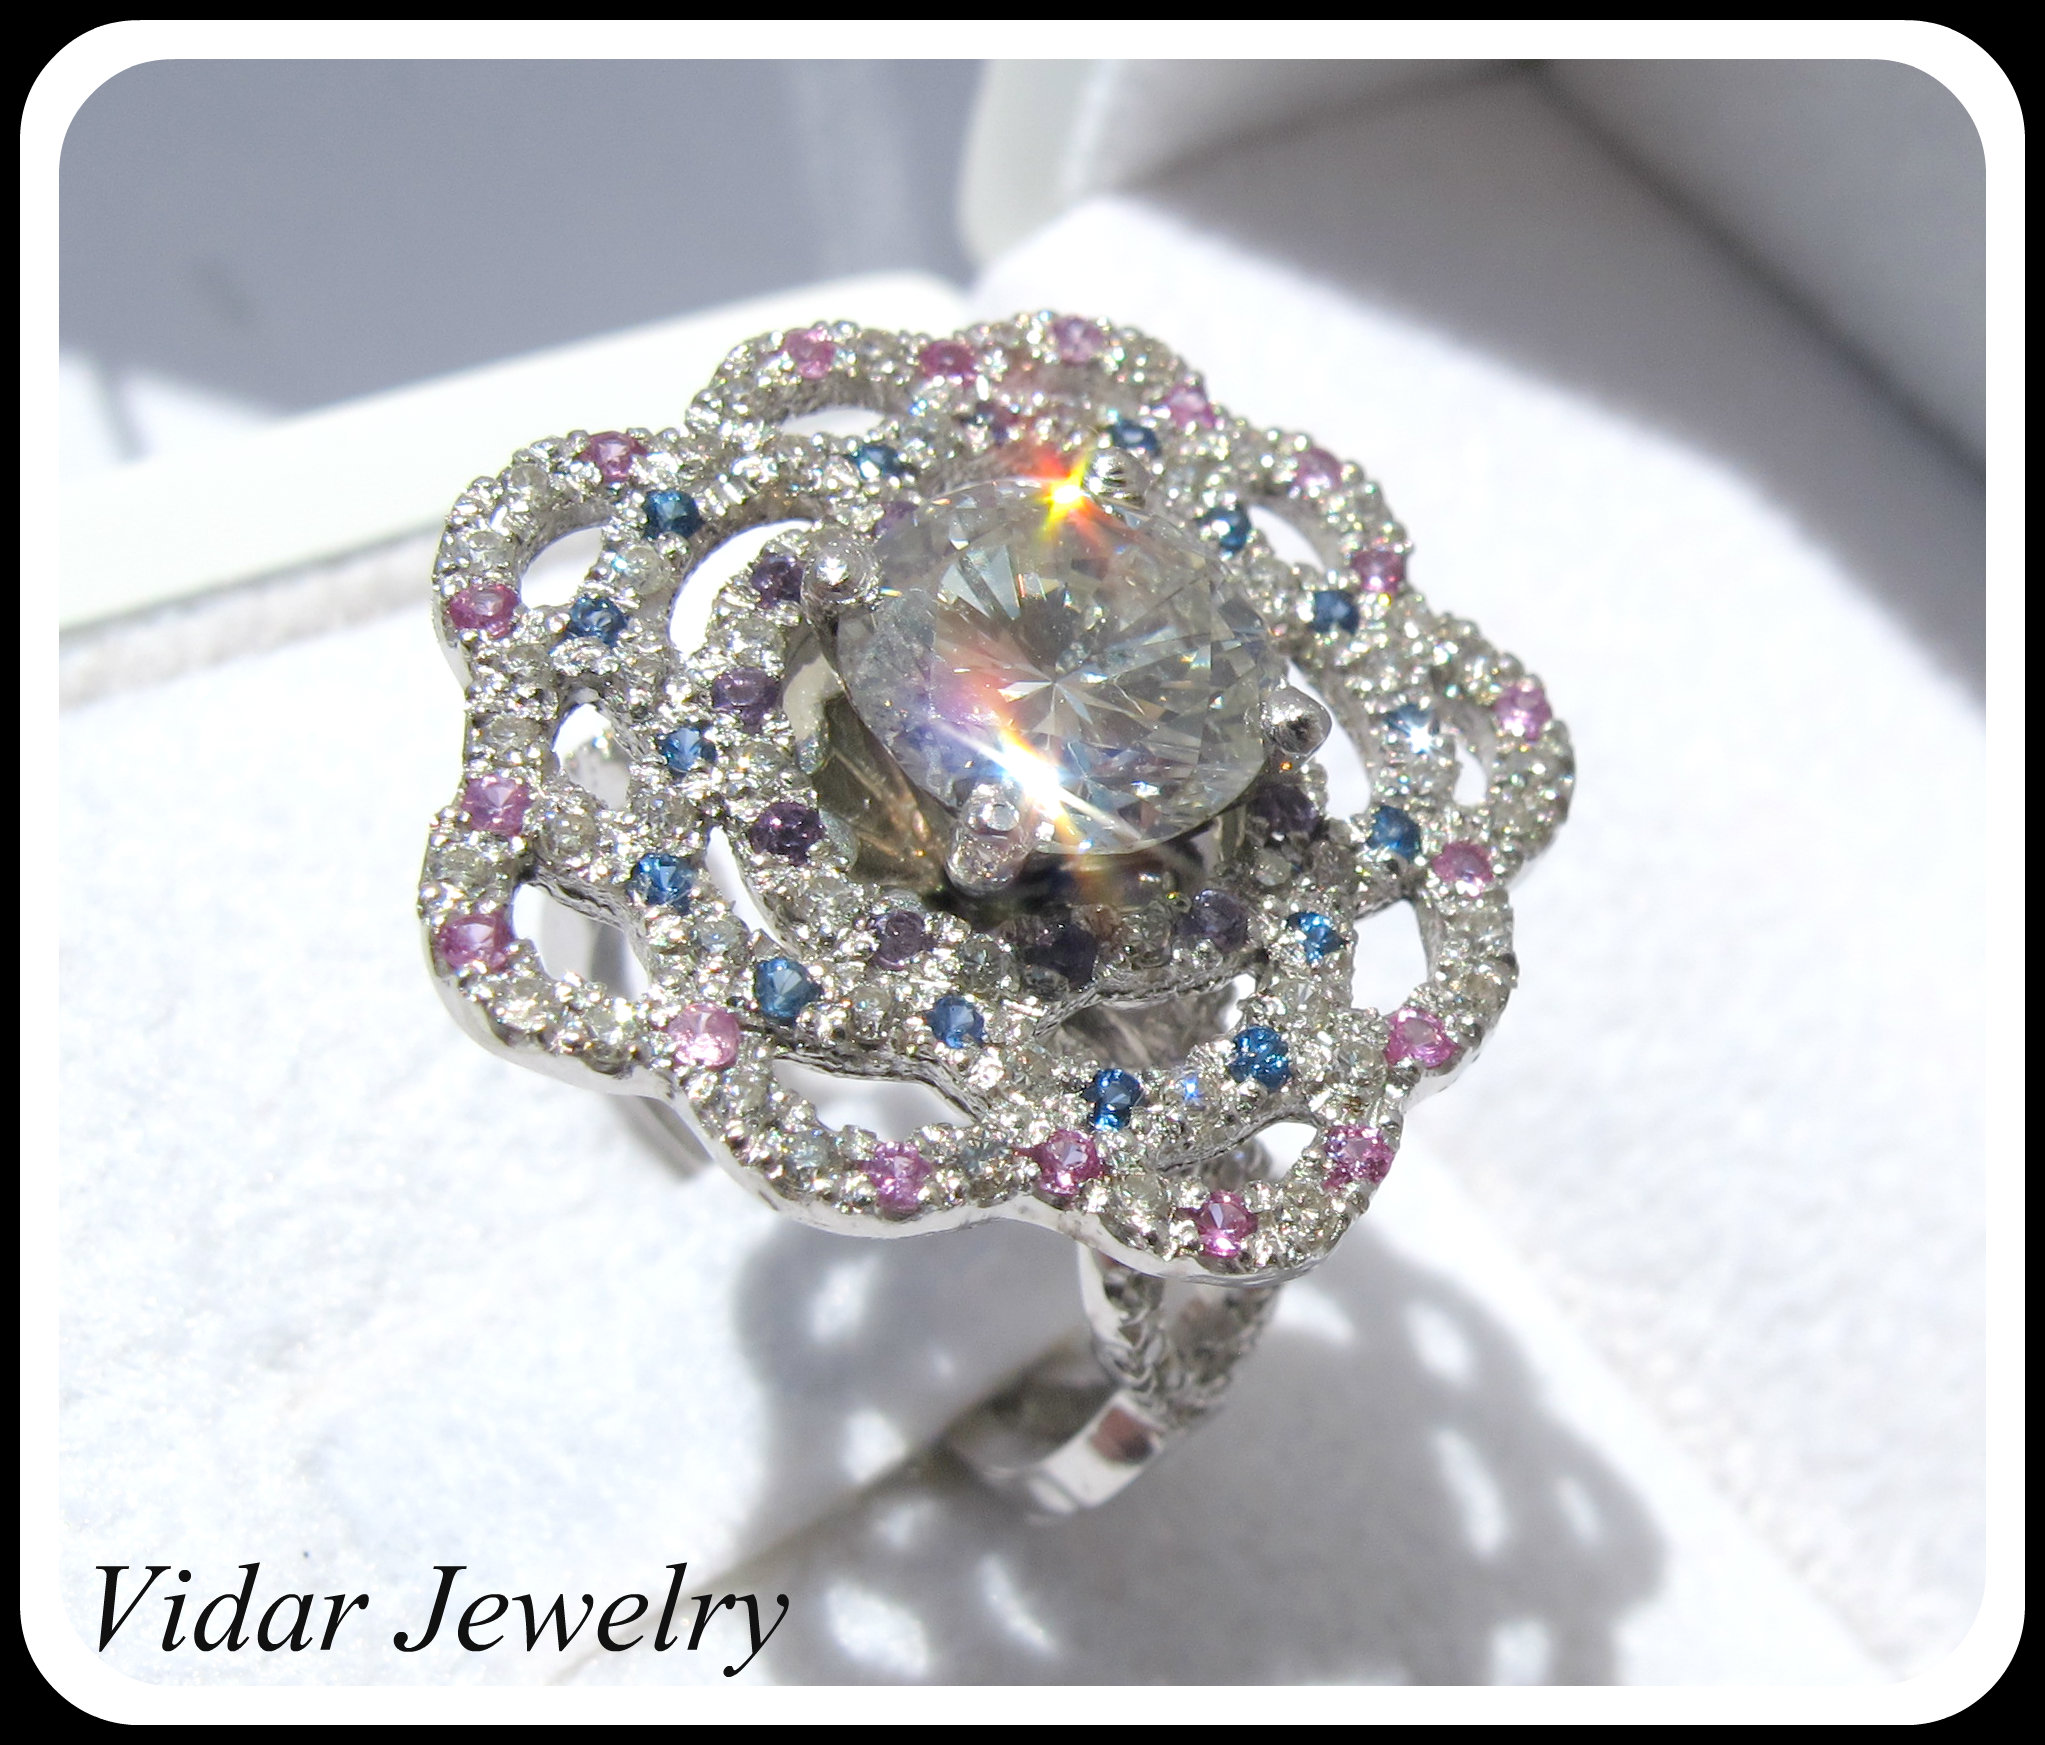 vidarjewelry tire tread wedding band 2 Ct Diamond Flower Engagement Ring